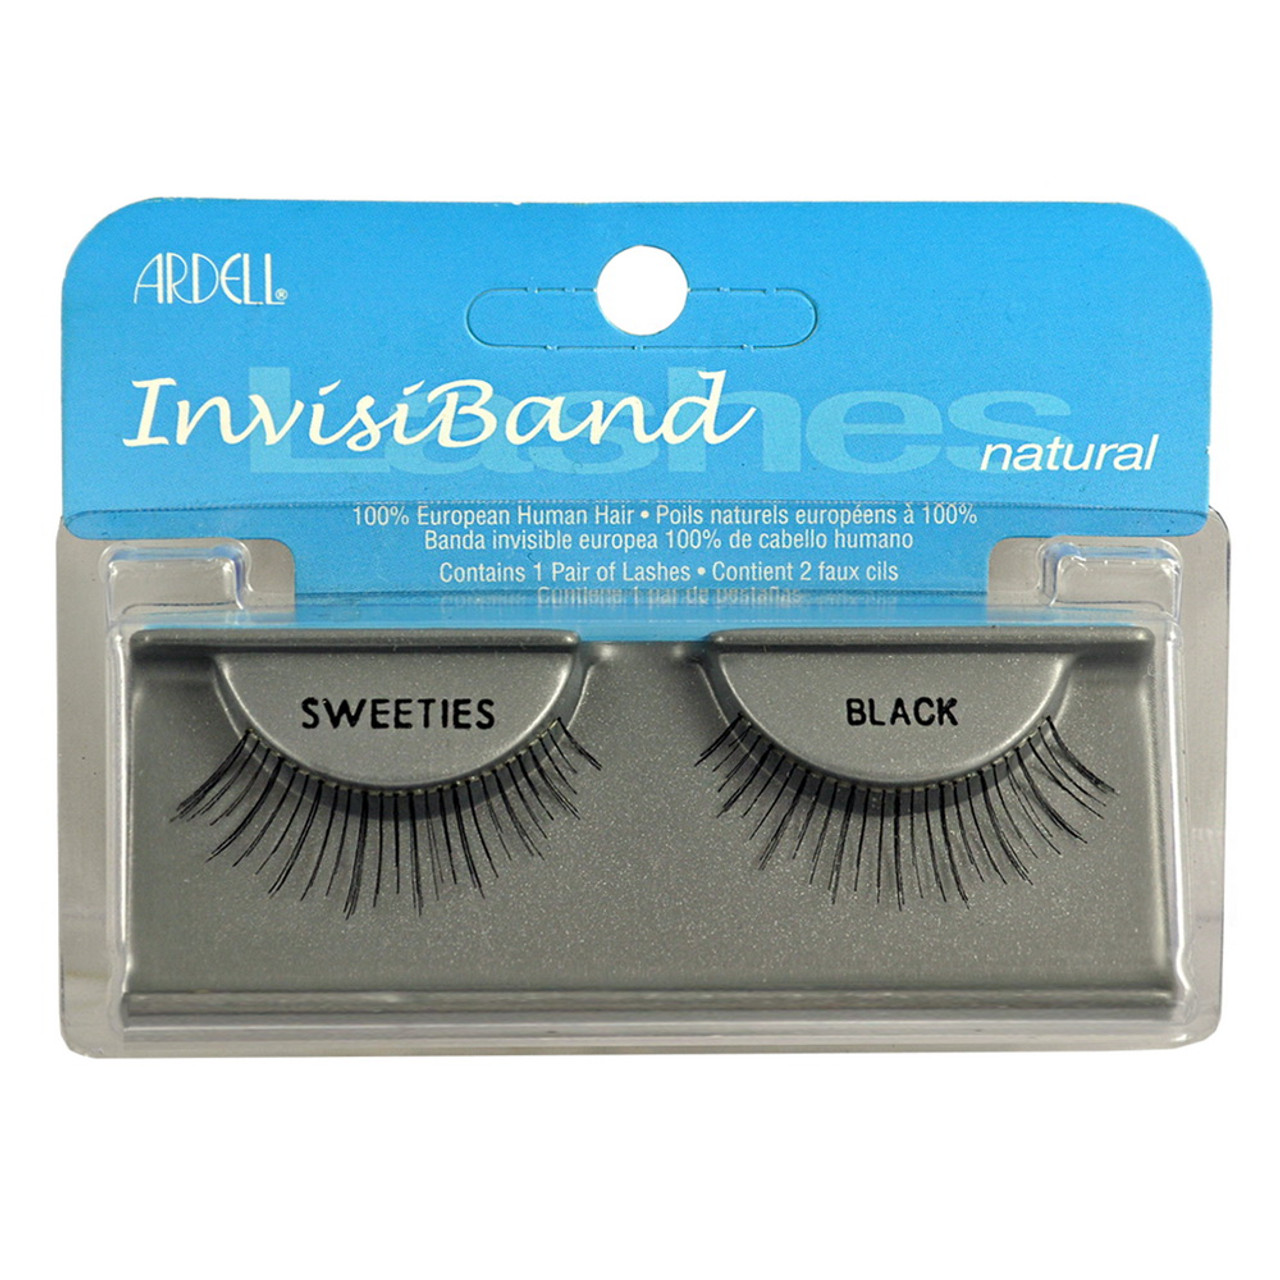 31ebdd5f224 These lashes feature an invisible, lightweight band that connects the hair  strands to form a